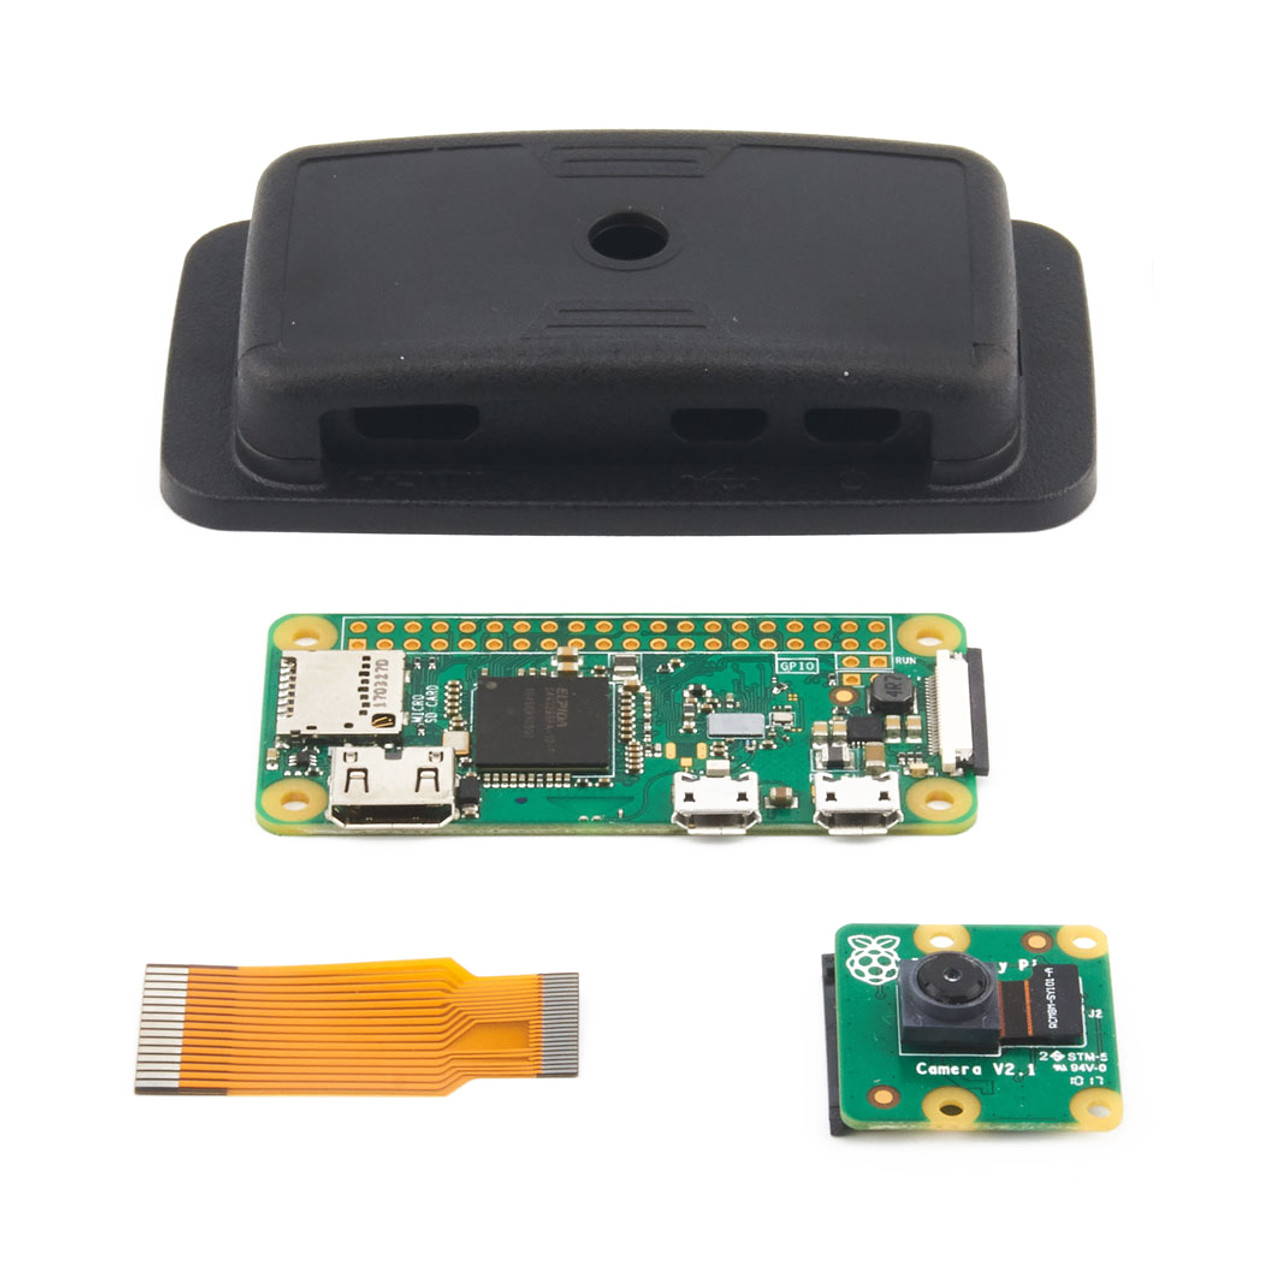 Power Adapter Official Pi Zero Case and Basic Components Development Kit Type B with Micro SD Card Built-in WiFi waveshare Raspberry Pi Zero W